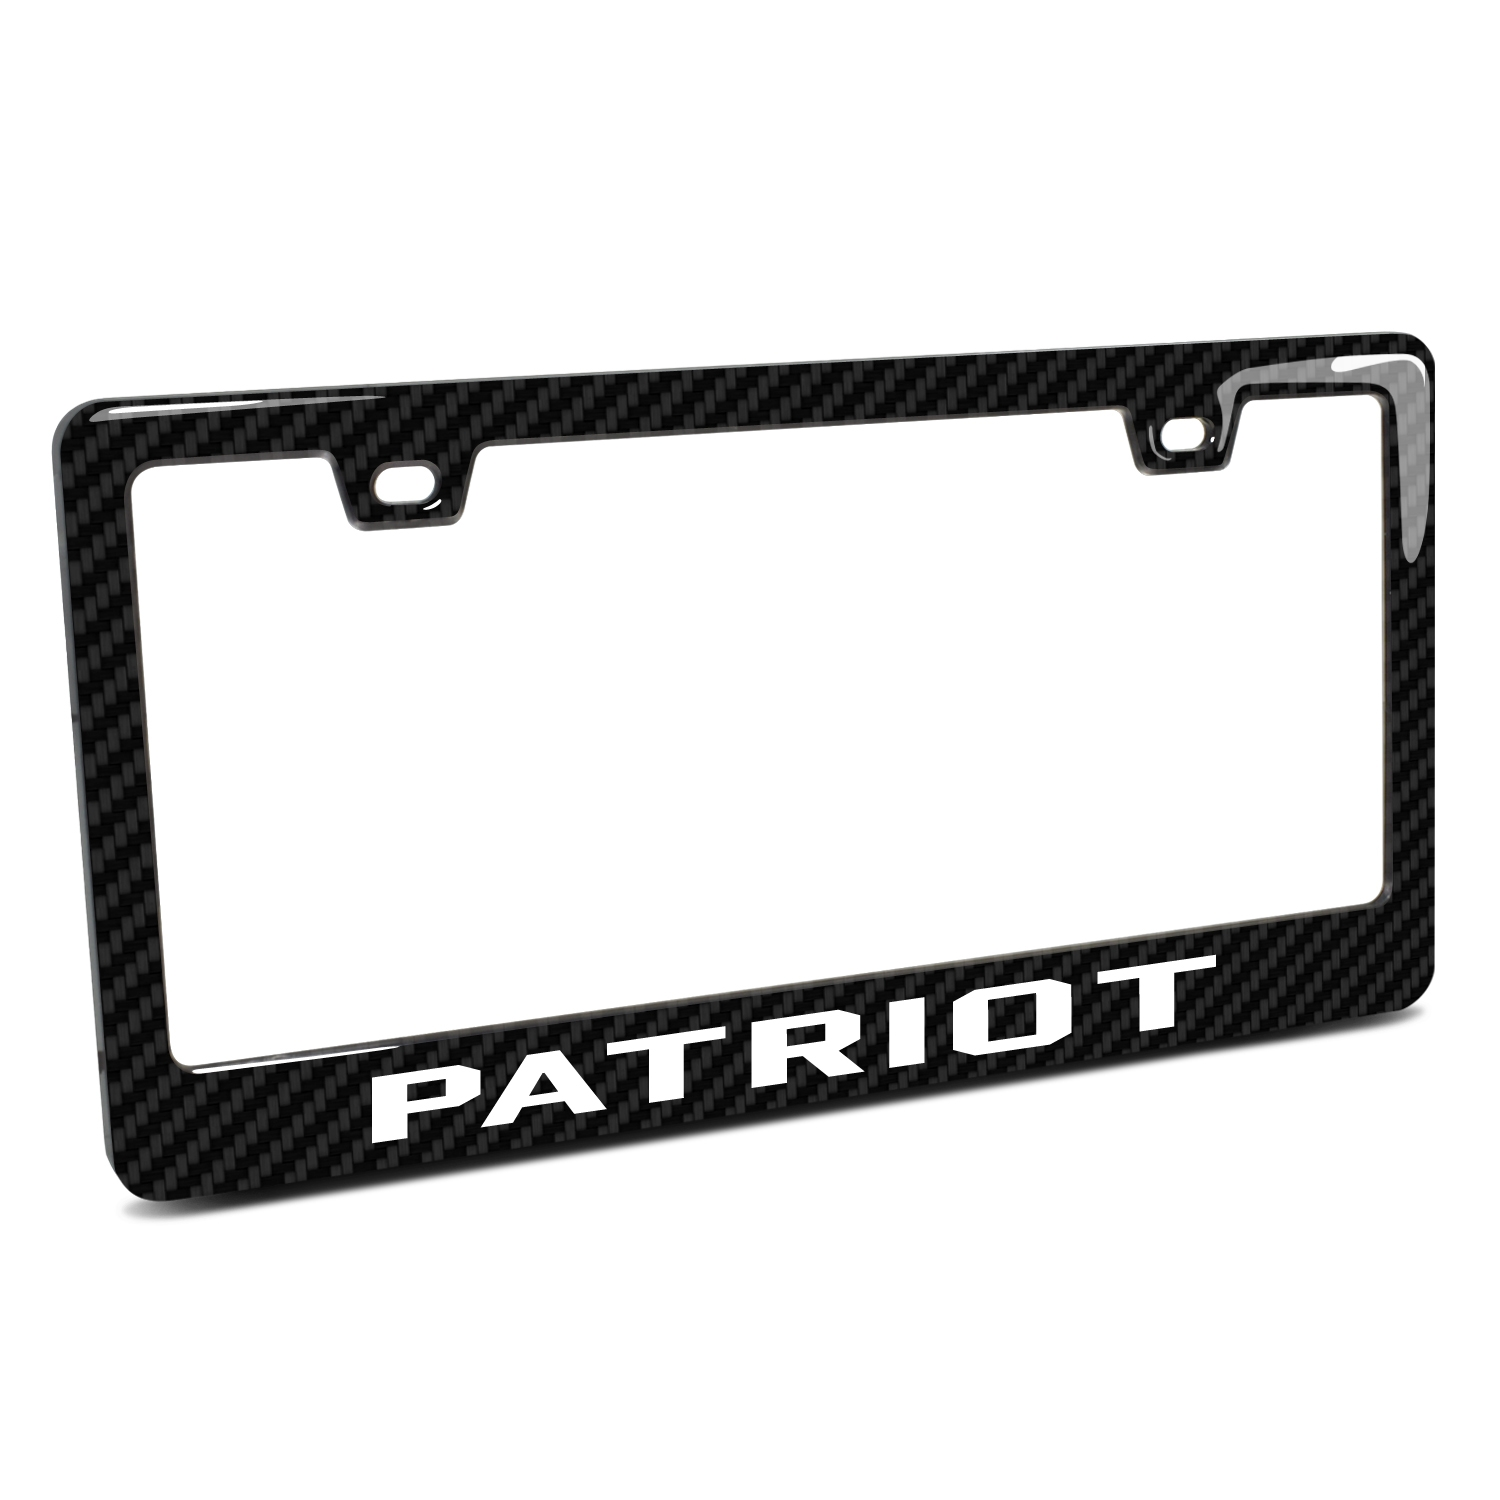 Jeep Patriot Black Real 3K Carbon Fiber Finish ABS Plastic License Plate Frame